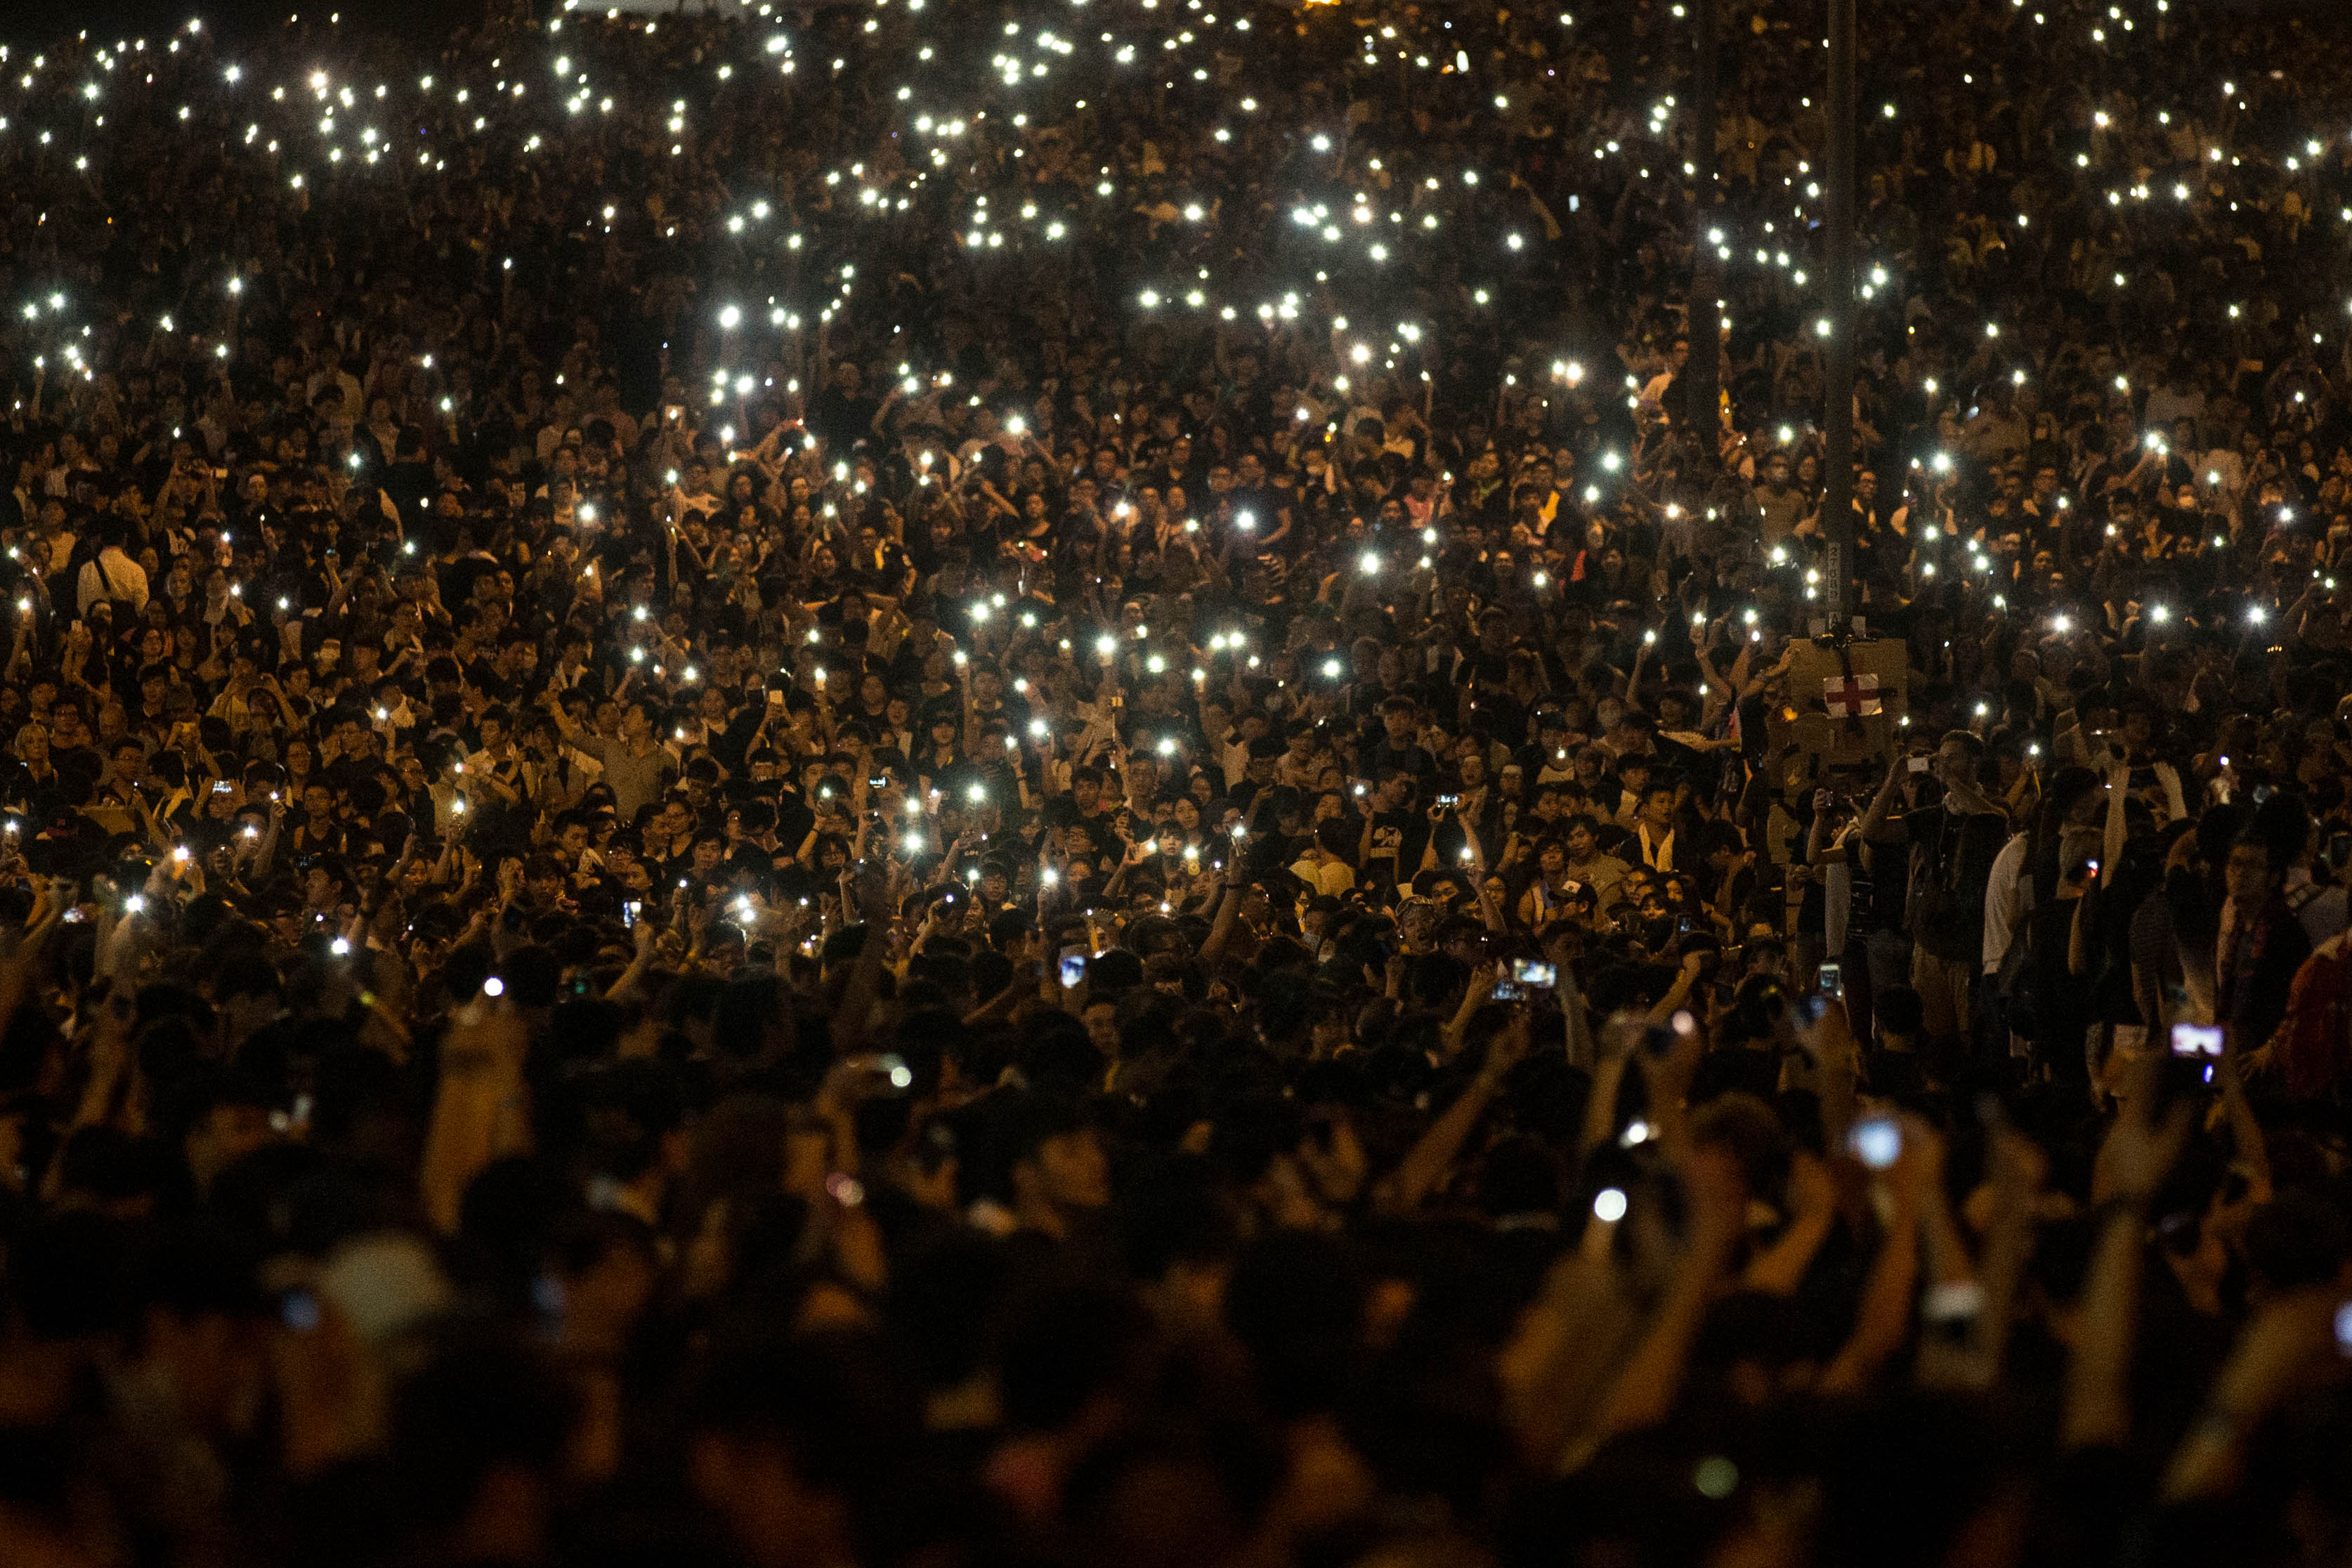 HONG KONG - SEPTEMBER 29:  Protesters wave their cell phones in the air in the streets outside the Hong Kong Government Complex on September 29, 2014 in Hong Kong, Hong Kong. Thousands of pro democracy supporters have remained in the streets of Hong Kong for another day of protests. Protestors are unhappy with Chinese government's plans to vet candidates in Hong Kong's 2017 elections.  (Photo by Chris McGrath/Getty Images)